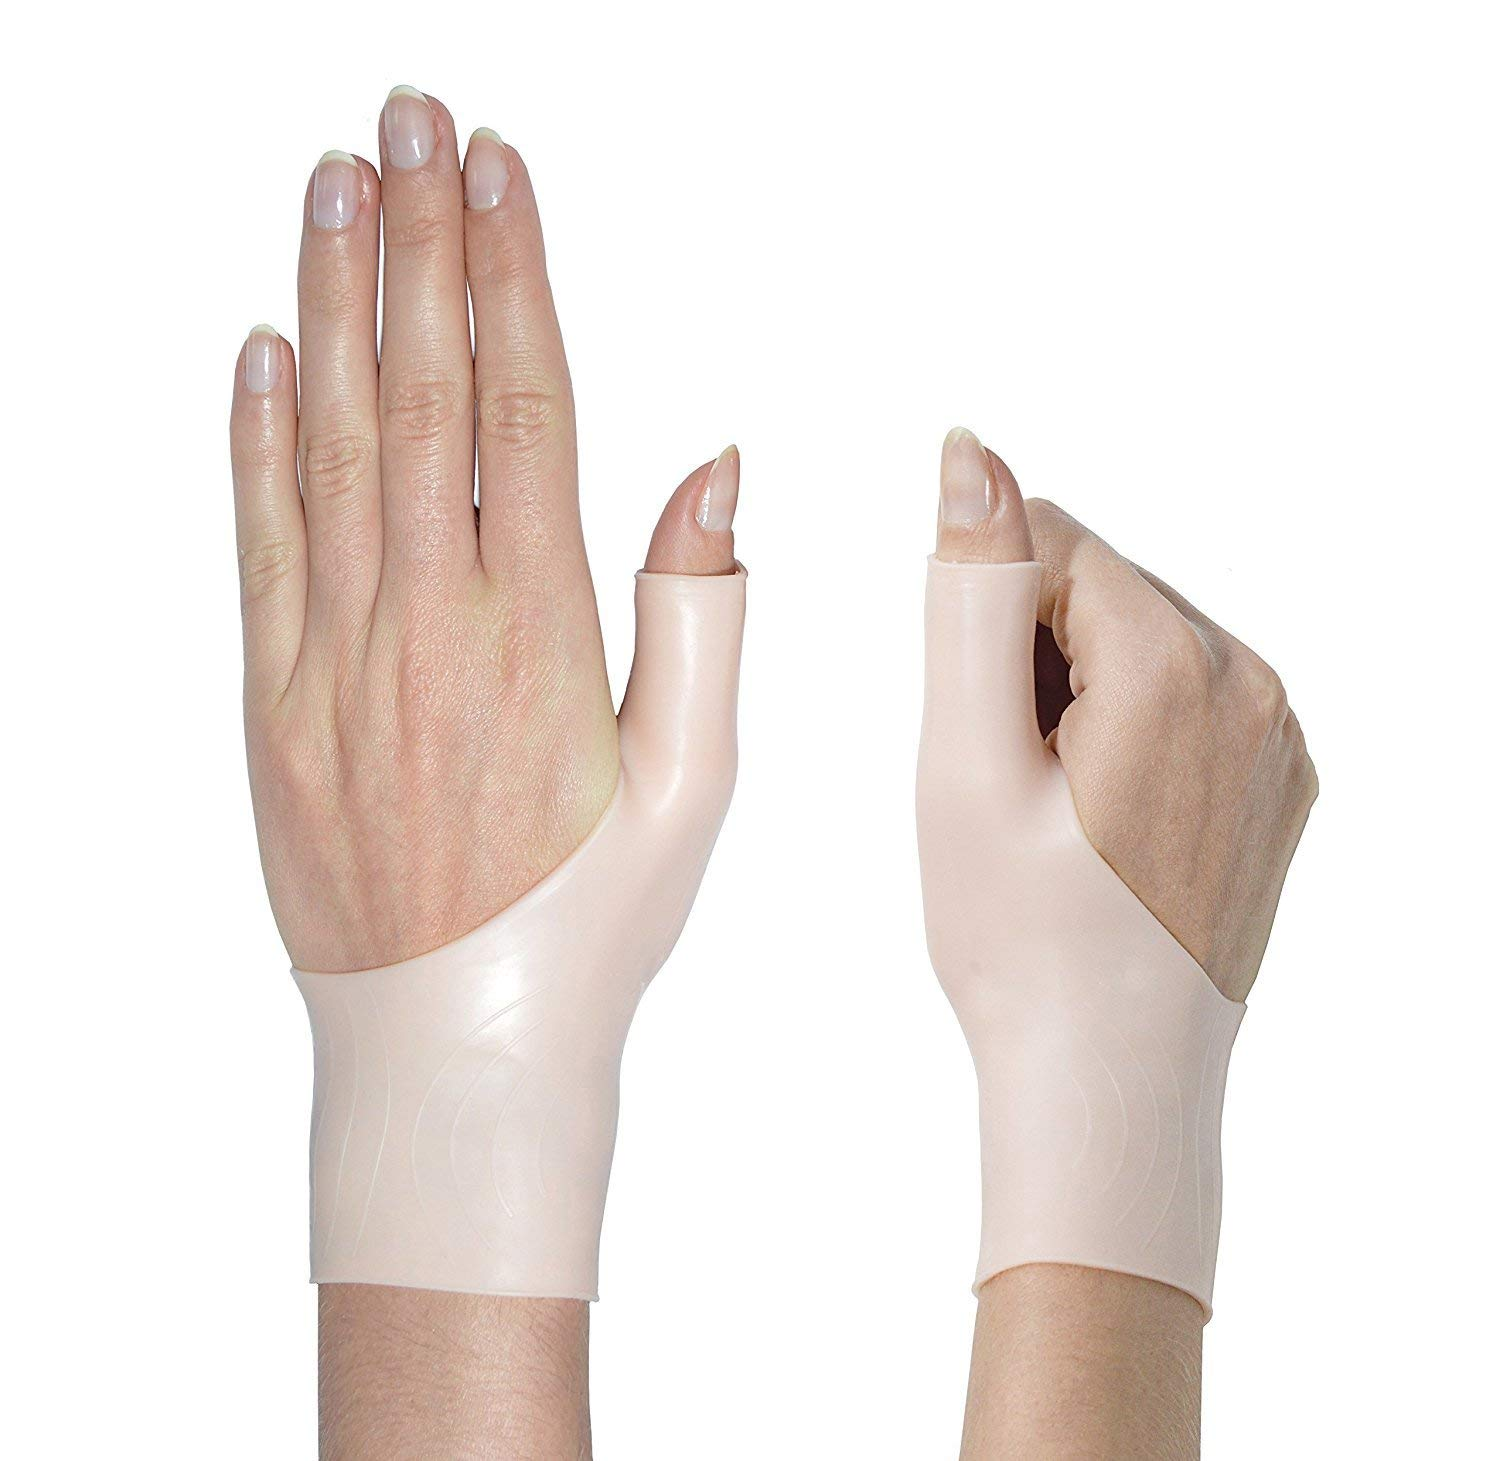 Wrist Brace - Gel Support for Women, Men & Kids - 1 Pair Bracers for Left & Right Hand, Pain Relief for Carpal Tunnel, Tendonitis, Arthritis, Tenosynovitis - Soft, Comfortable & Light Weight